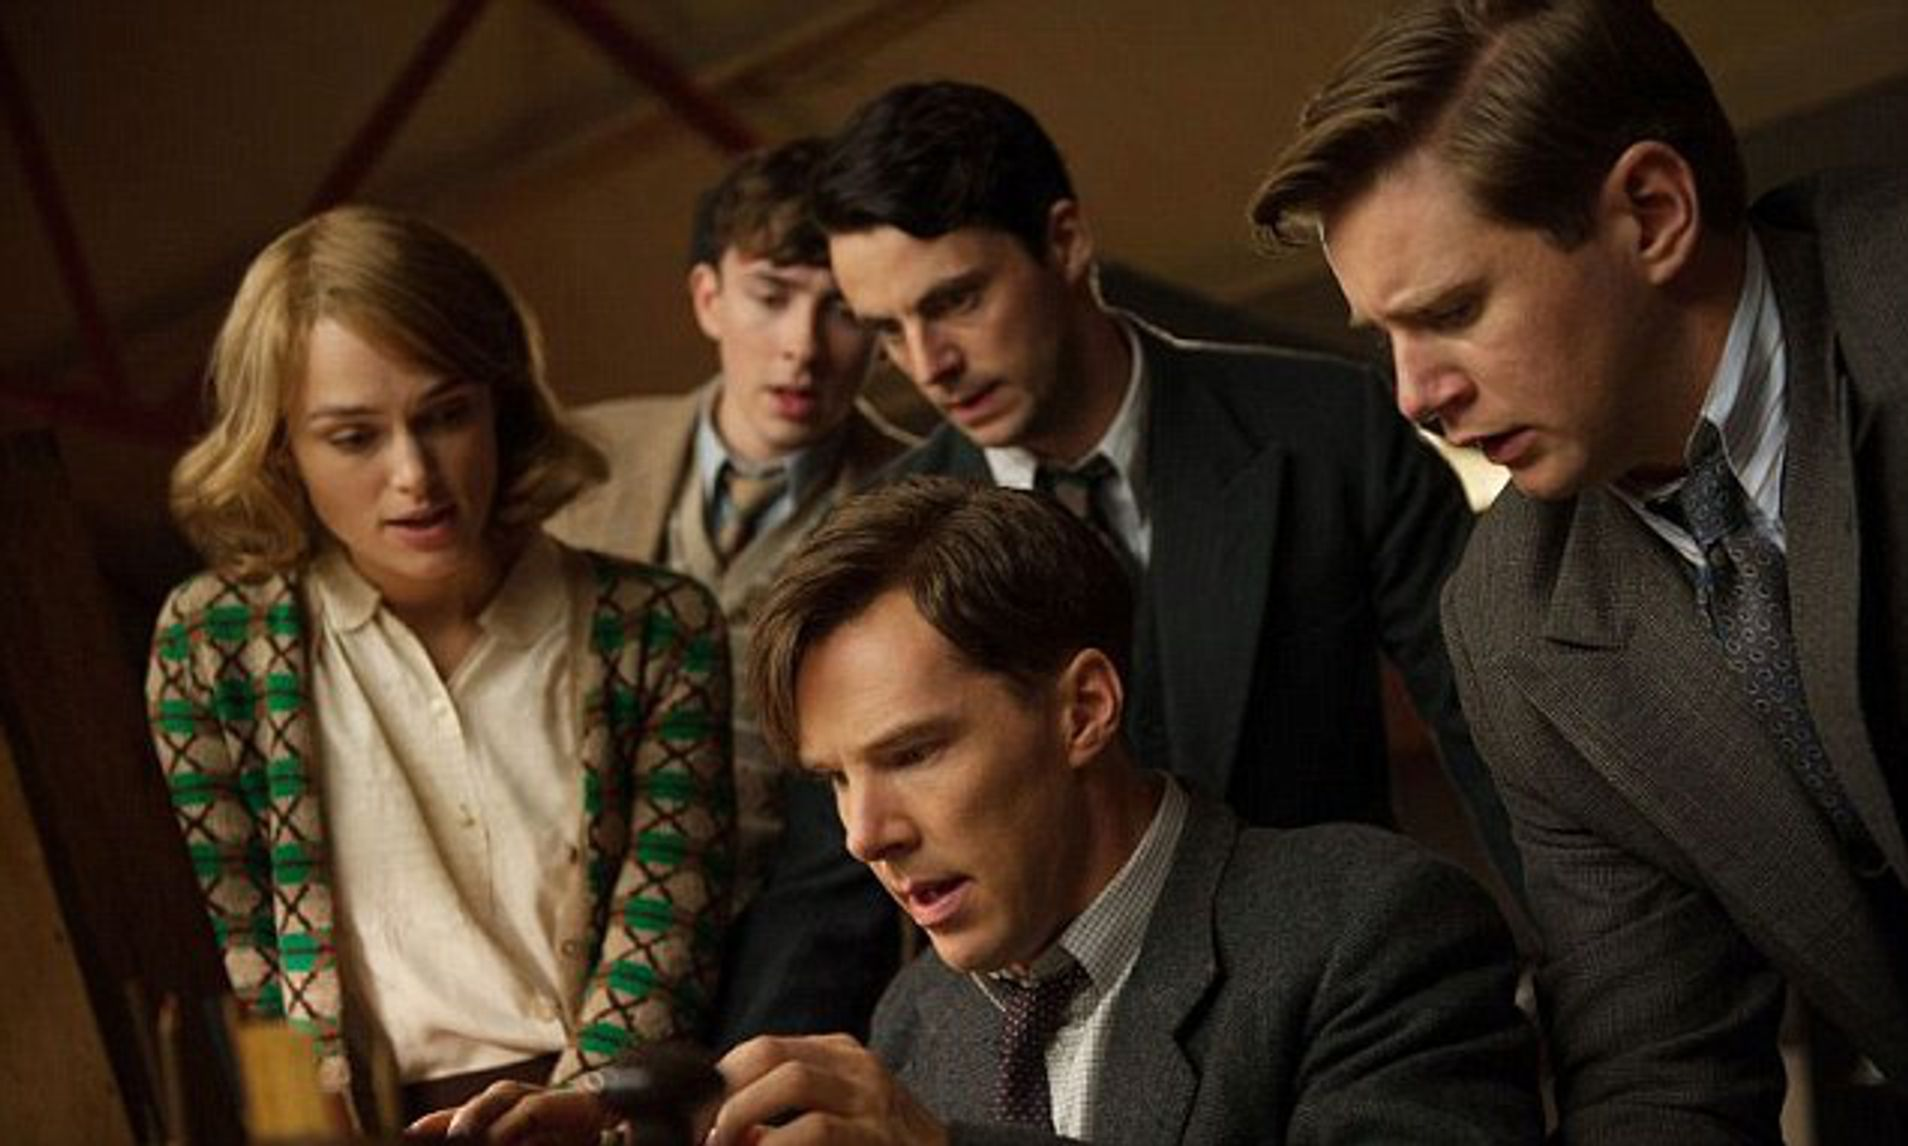 'The Imitation Game' (2014)